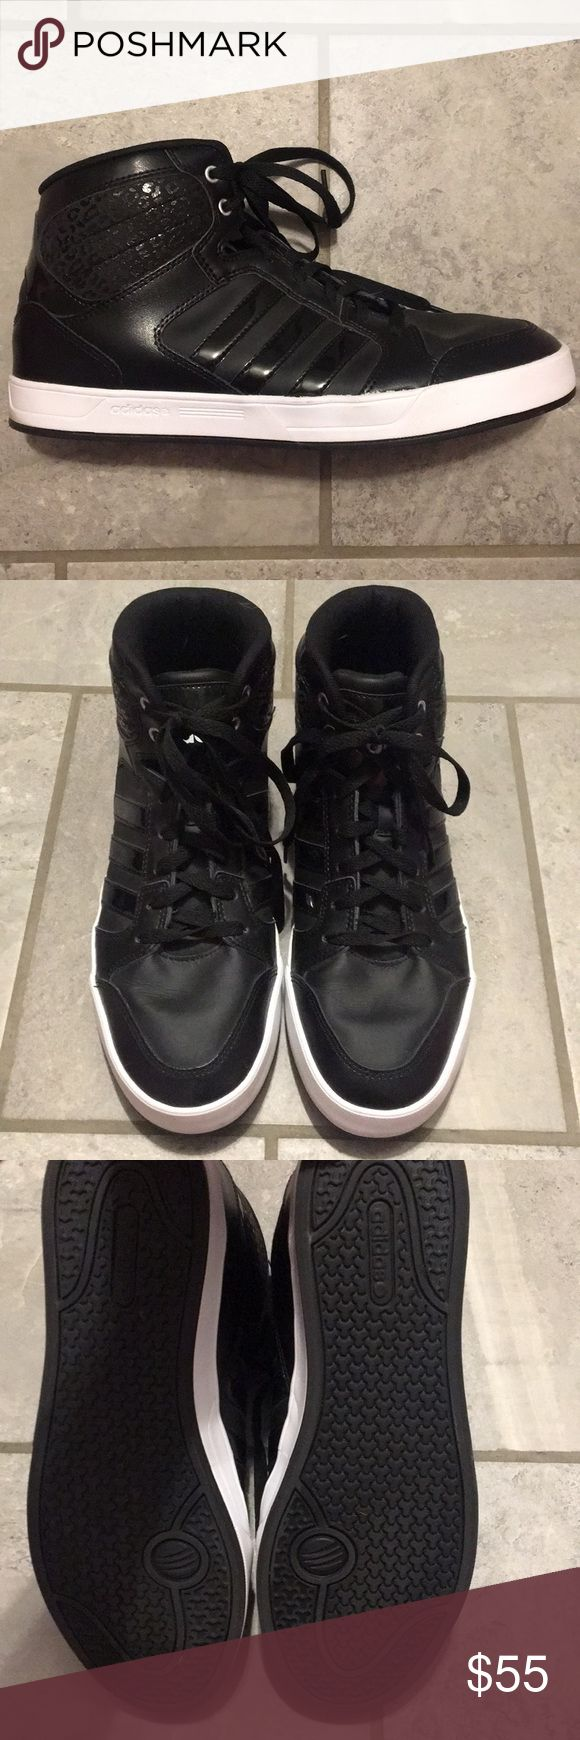 Adidas Neo high tops So sad I have to sell these but they are too wide for my narrow feet. they are a reposh.  They are in great condition since I never wore them. adidas Shoes Sneakers